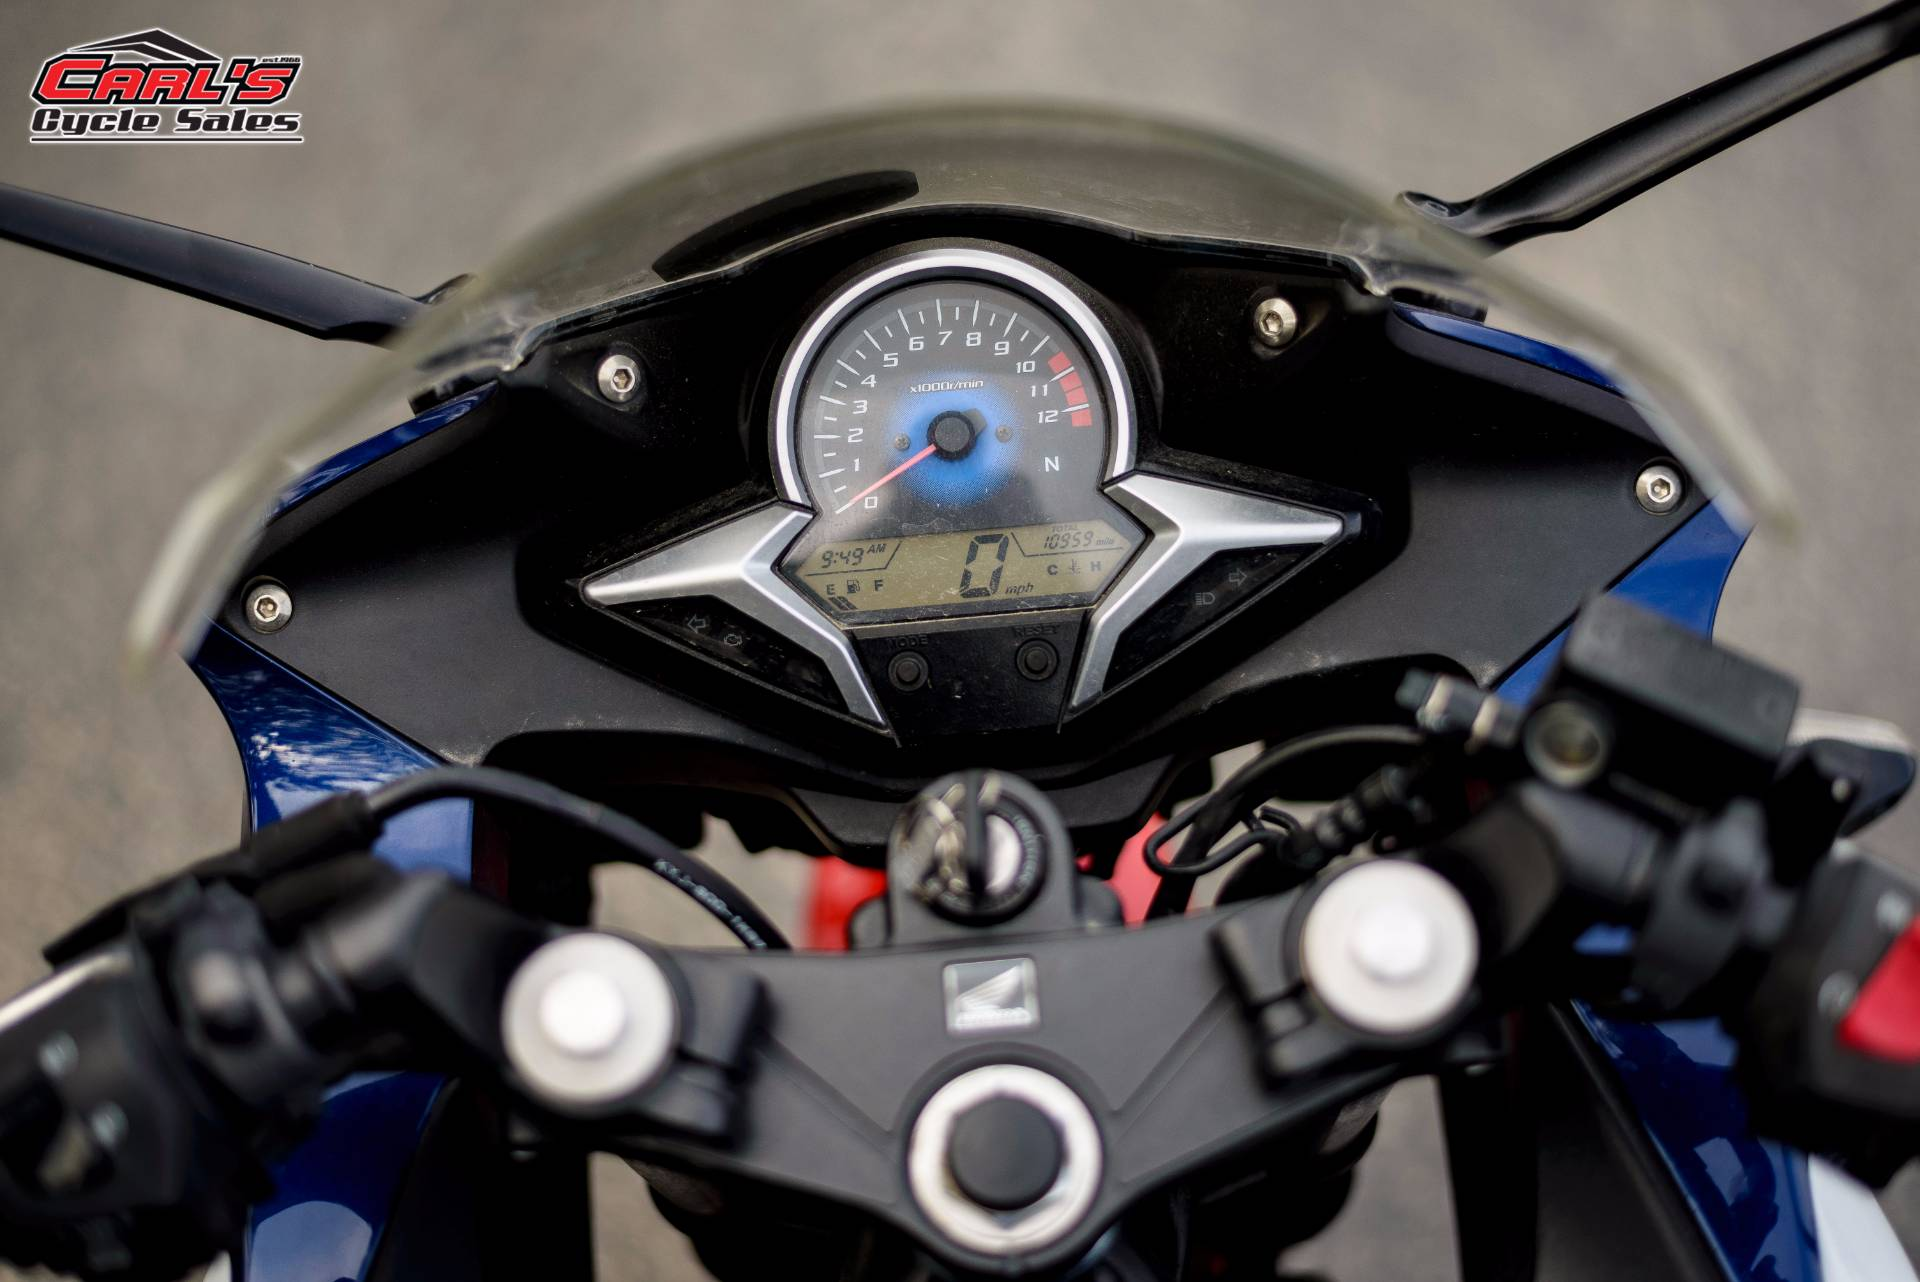 used 2012 honda cbr®250r motorcycles in boise, id | stock number